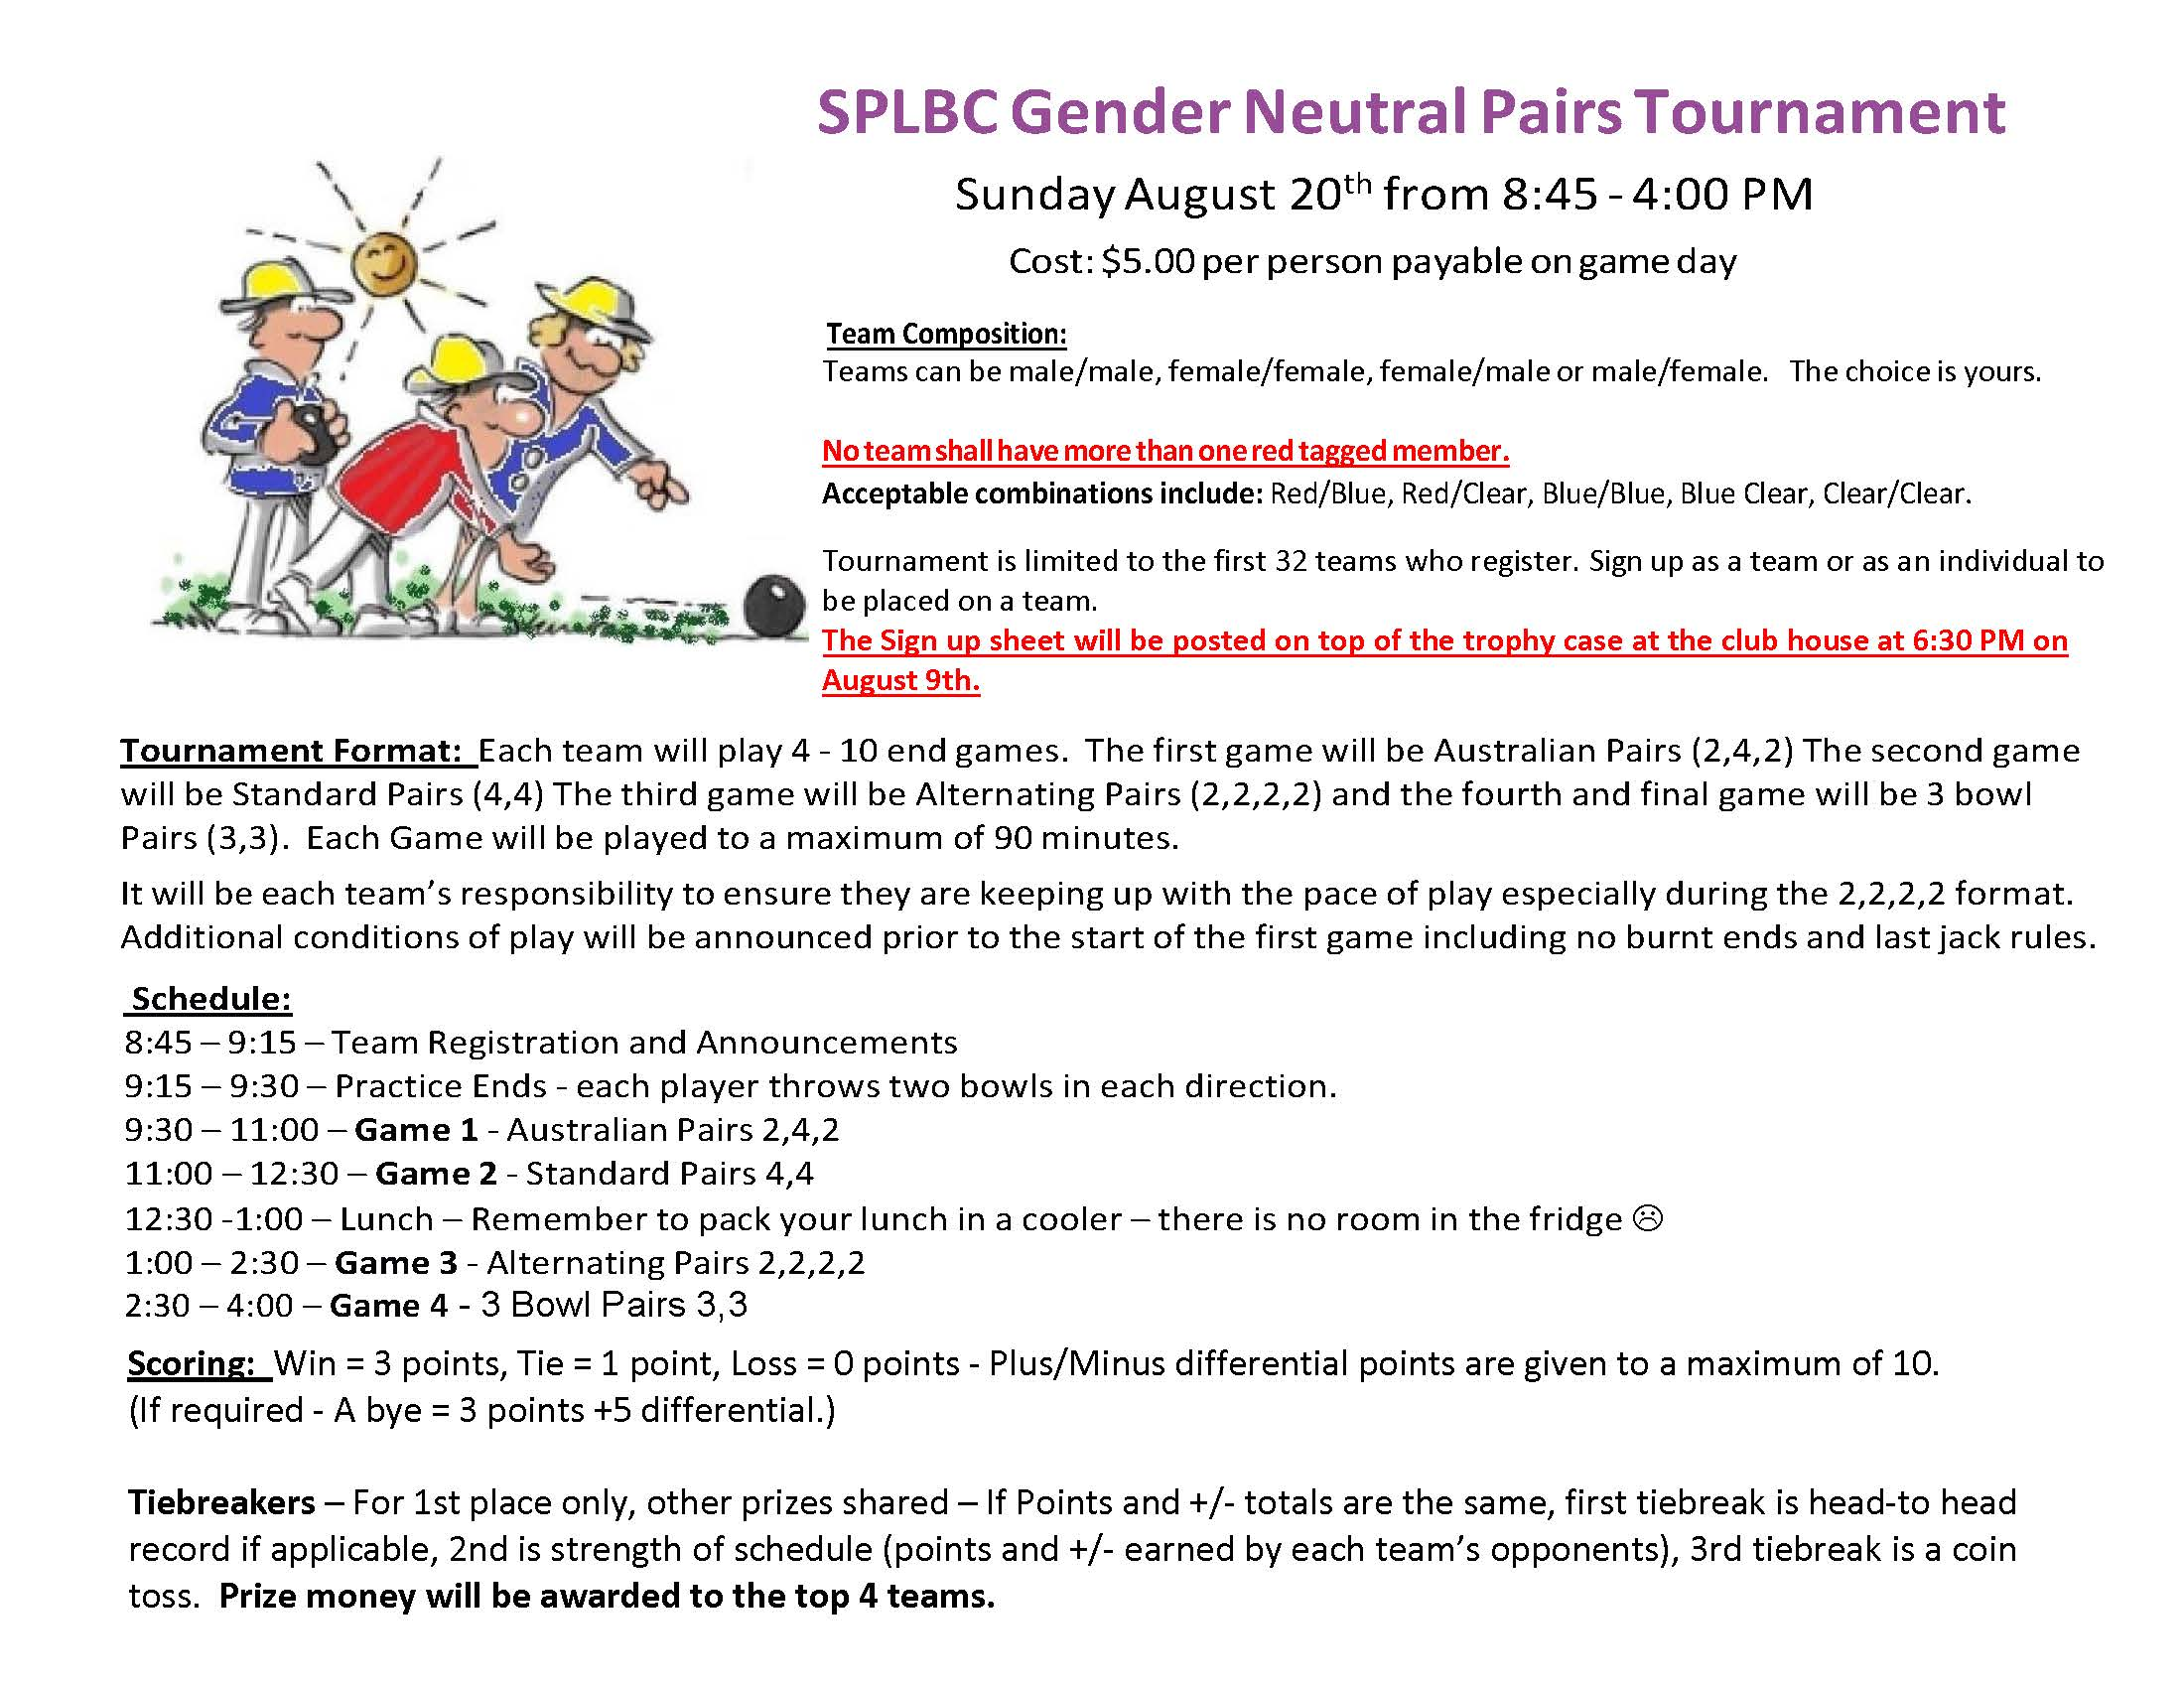 2017_Club_Gender_Neutral_Pairs_Tournament_Registraiton_Info_-_Sunday_August_20.jpg